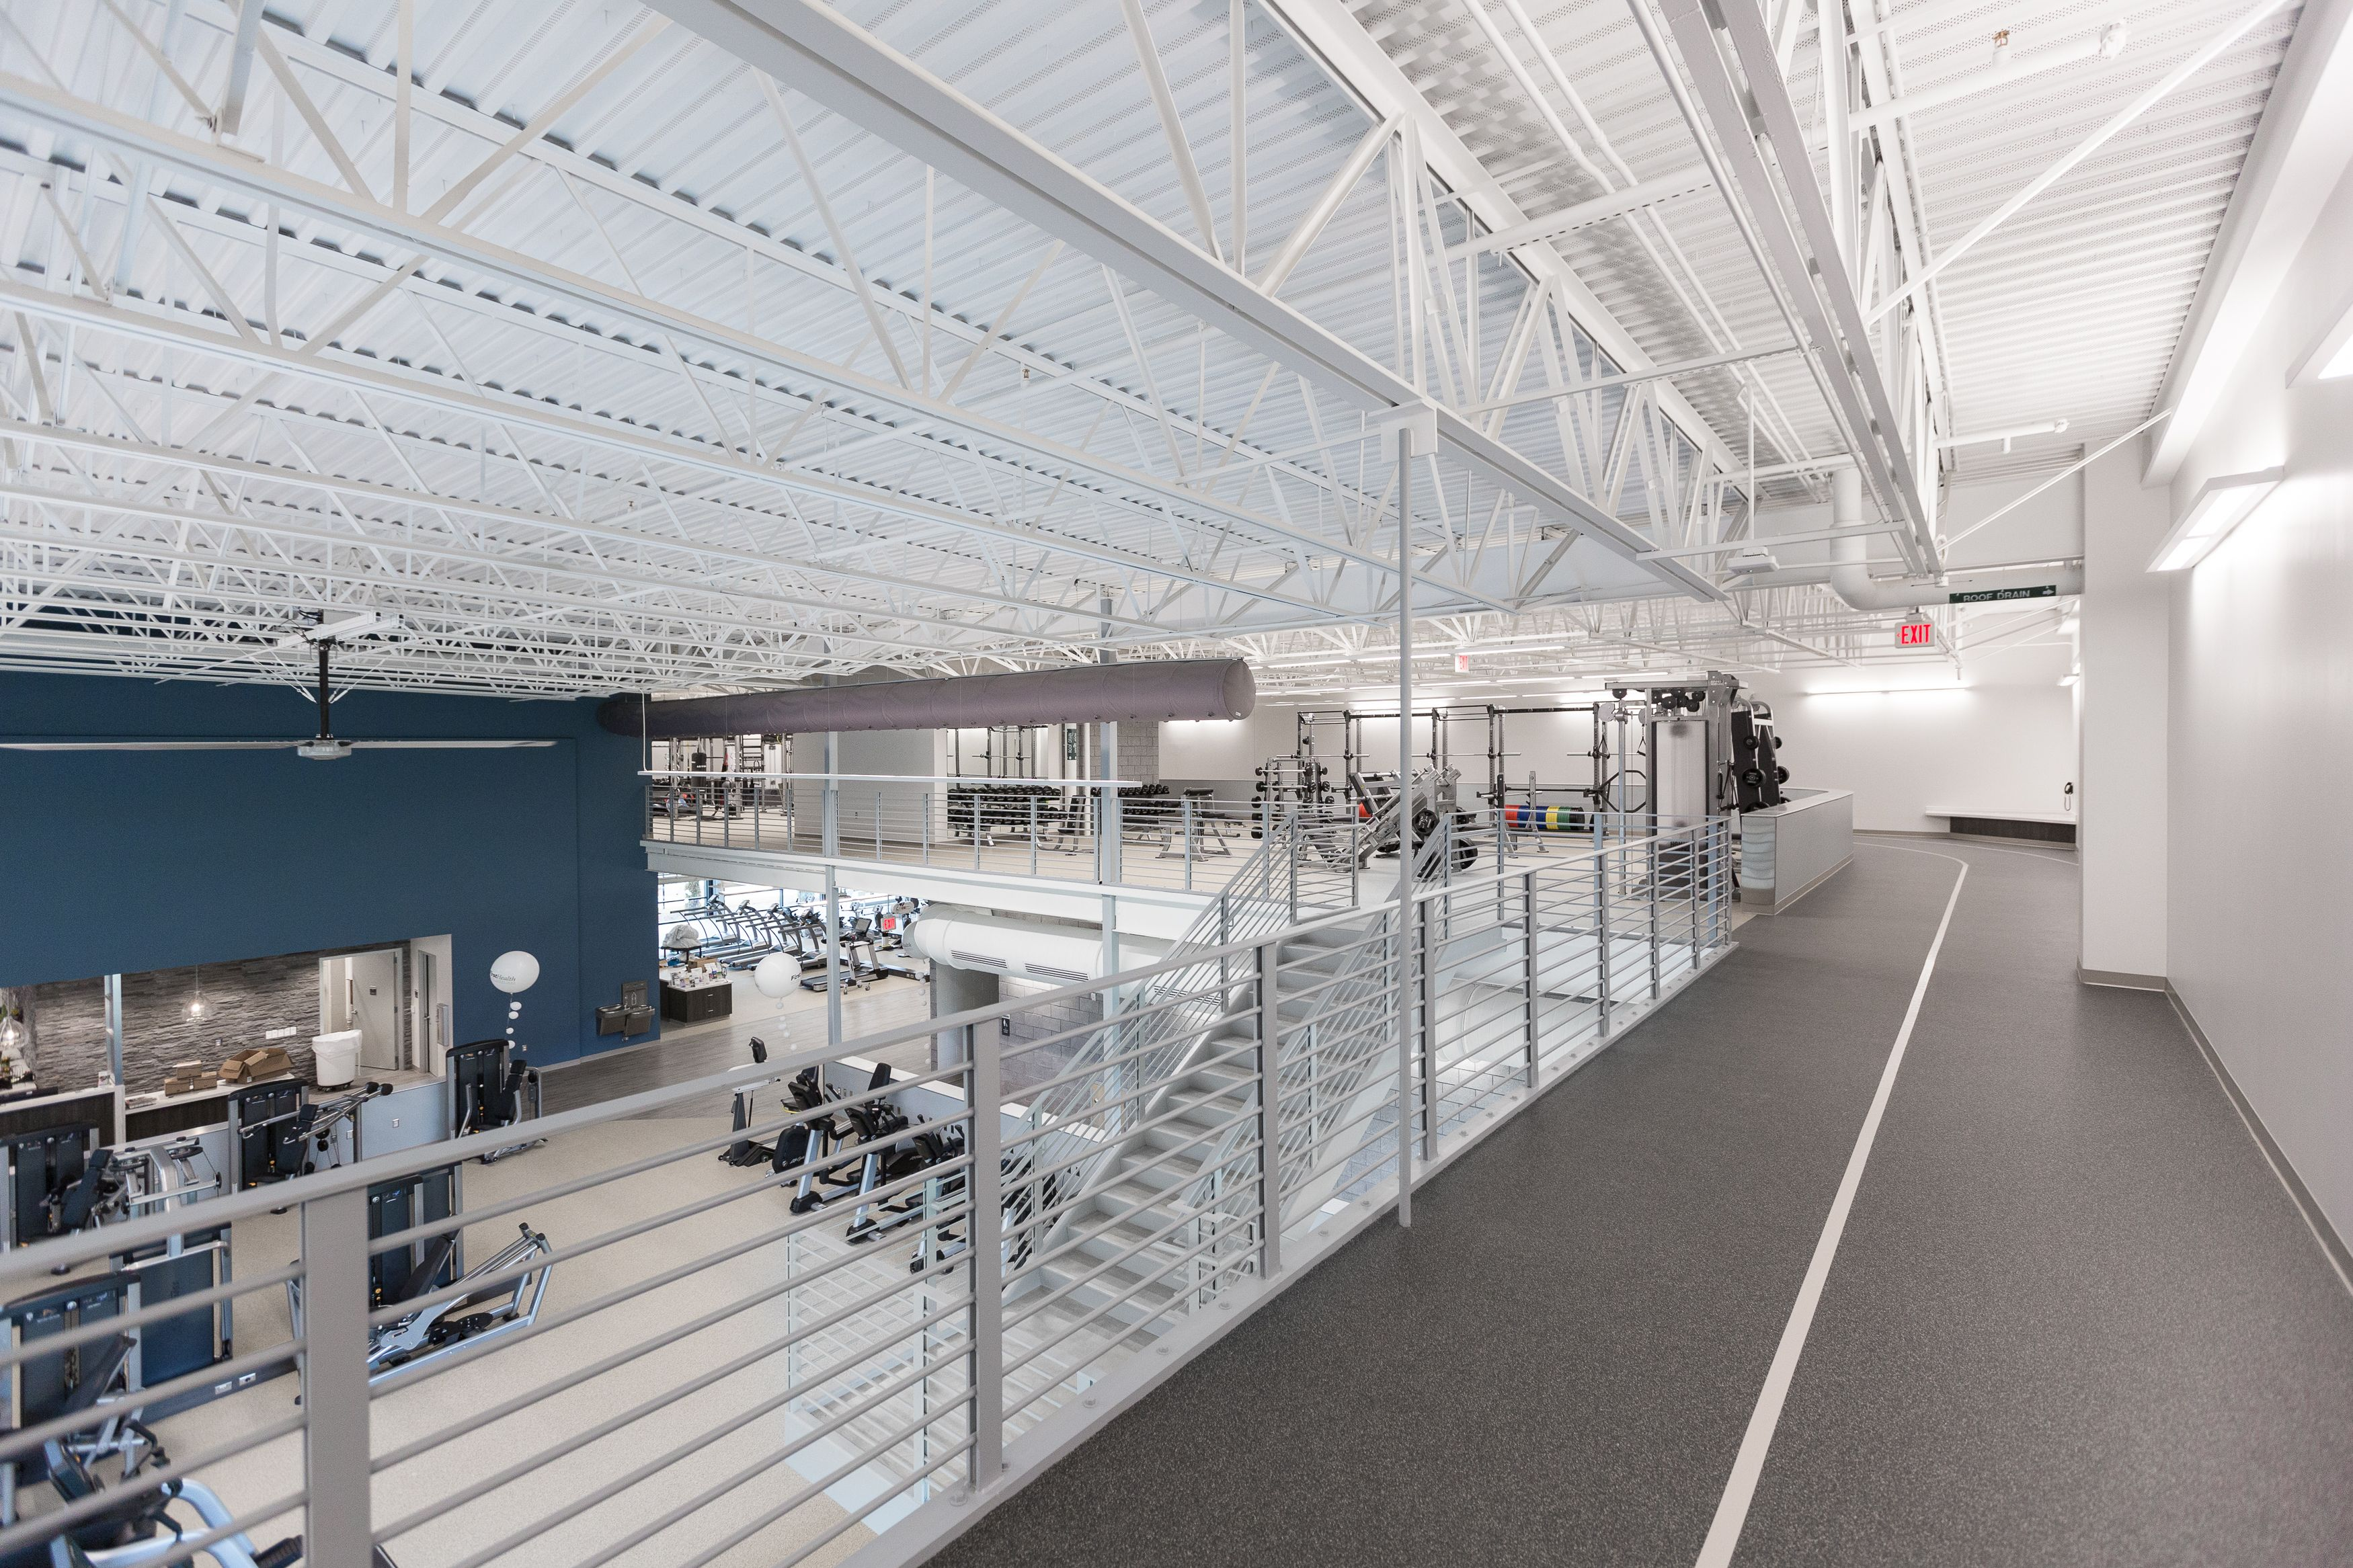 Firsthealth Fitness Lee Campus Sanford Nc Ecore Ecosurfaces Ecofit Spartansurfaces Recycledru Interior Architecture Transparent Design Aesthetic Value